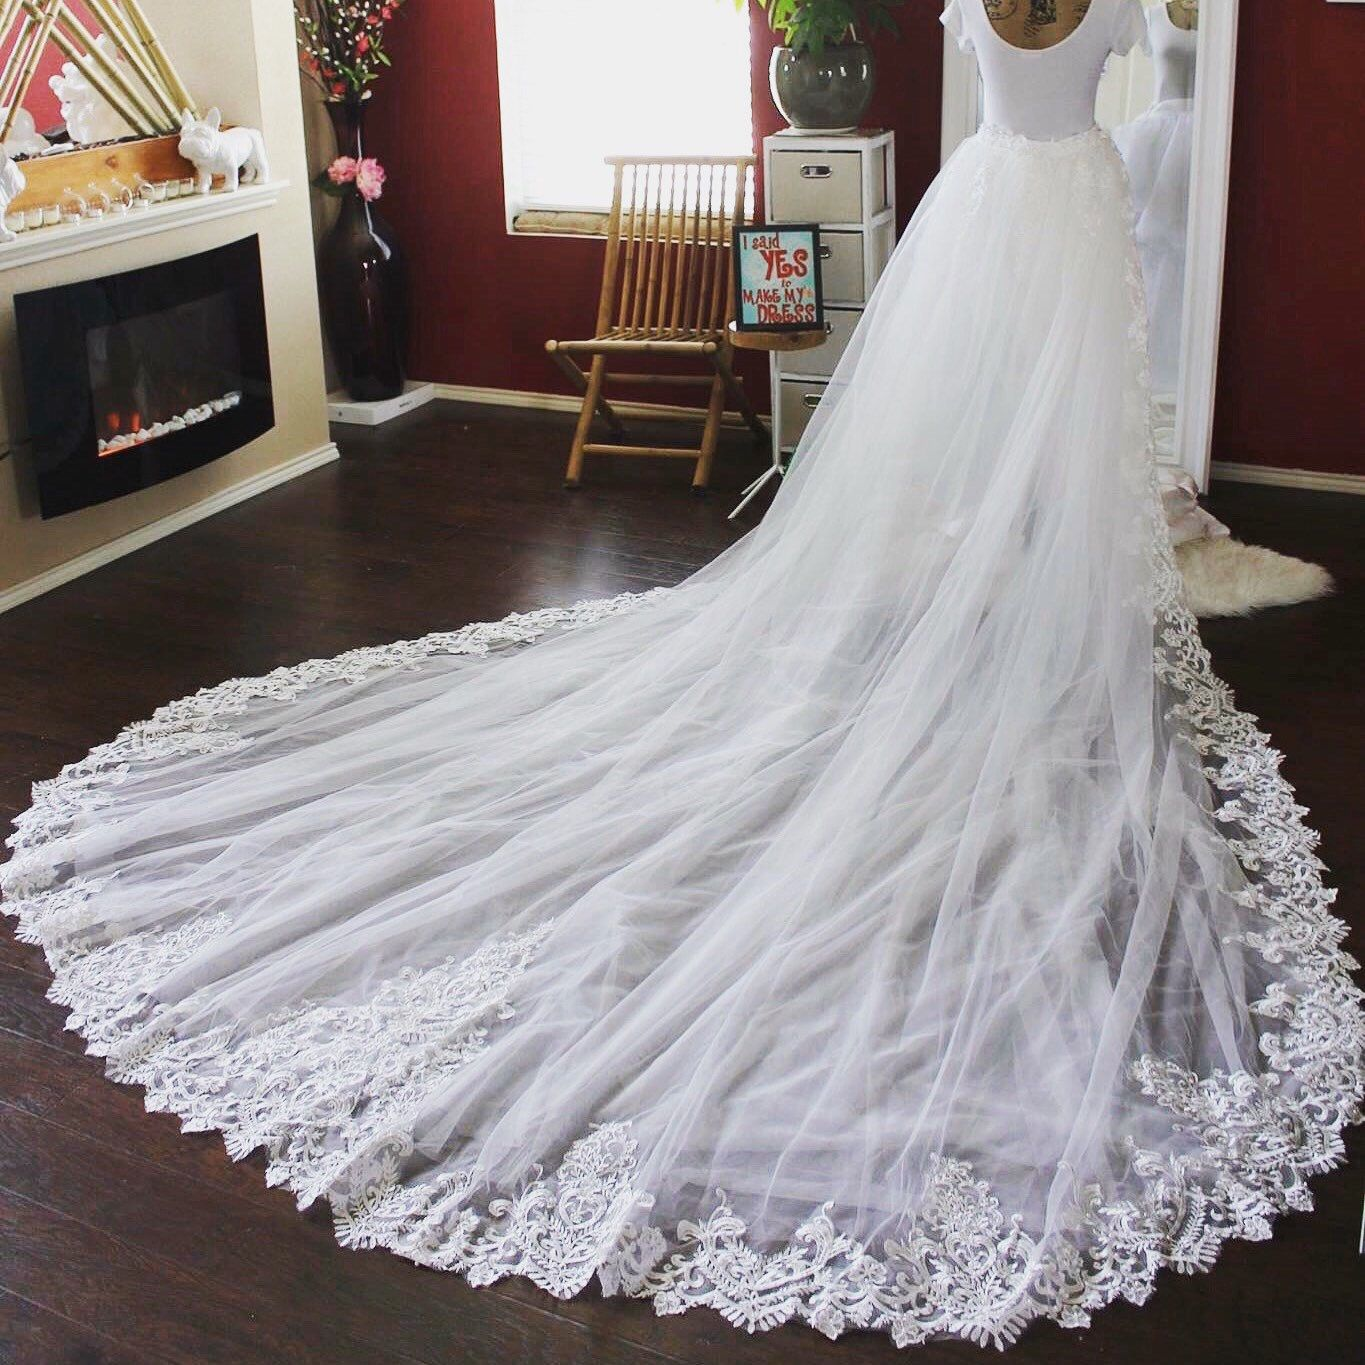 5ft Lace Detachable Train / Tulle Train with Satin